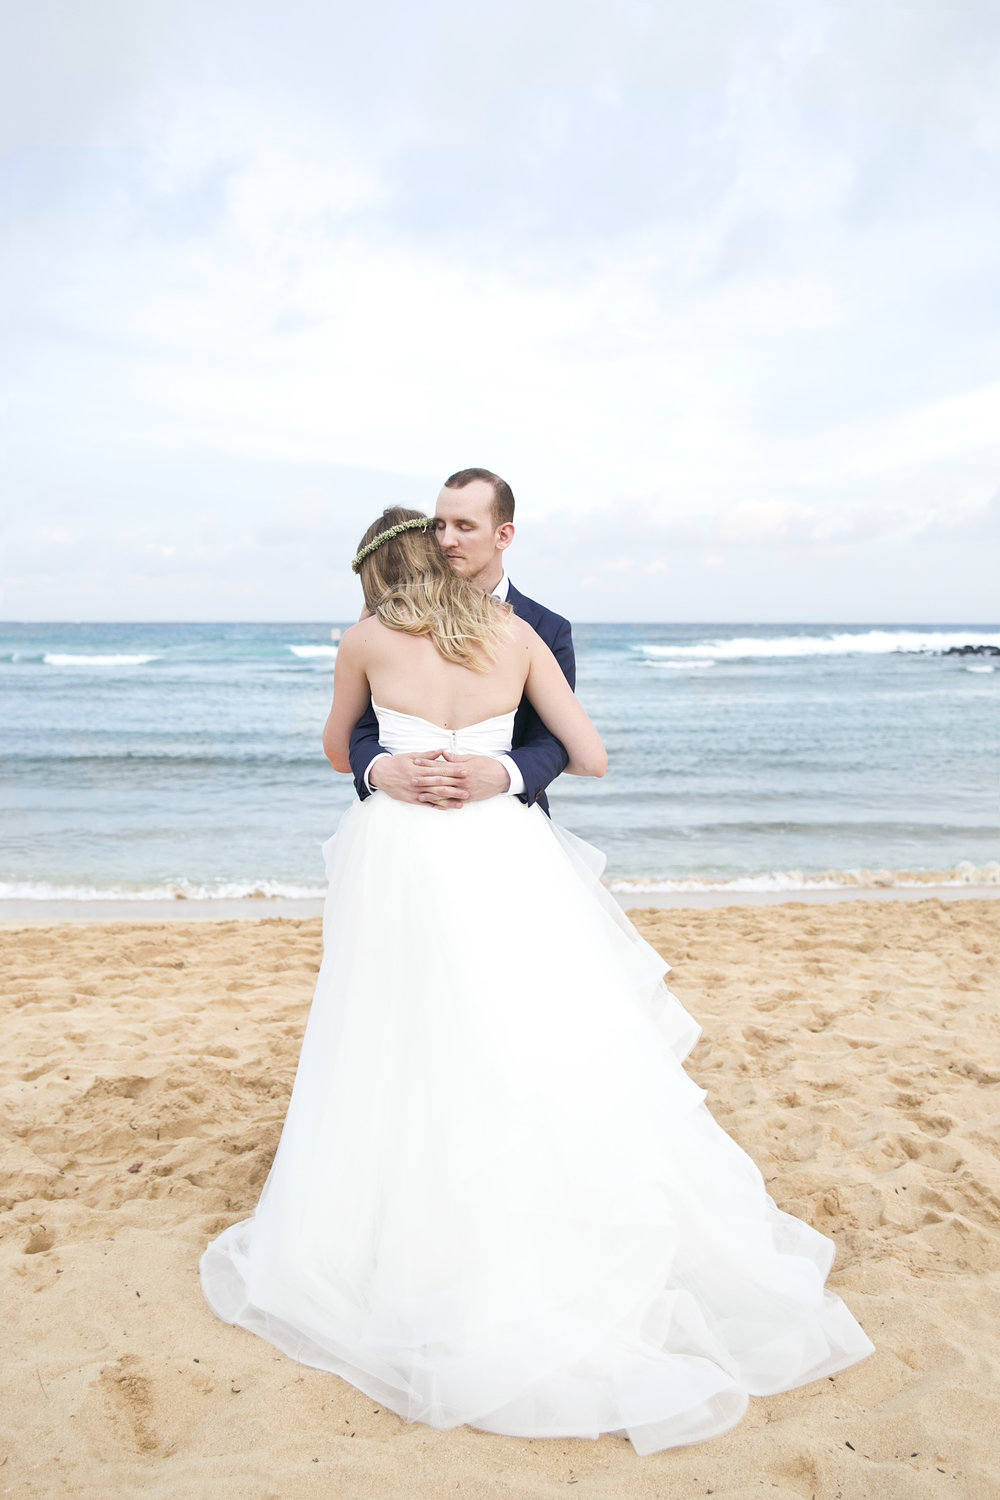 Destination wedding photos in Kauai Hawaii